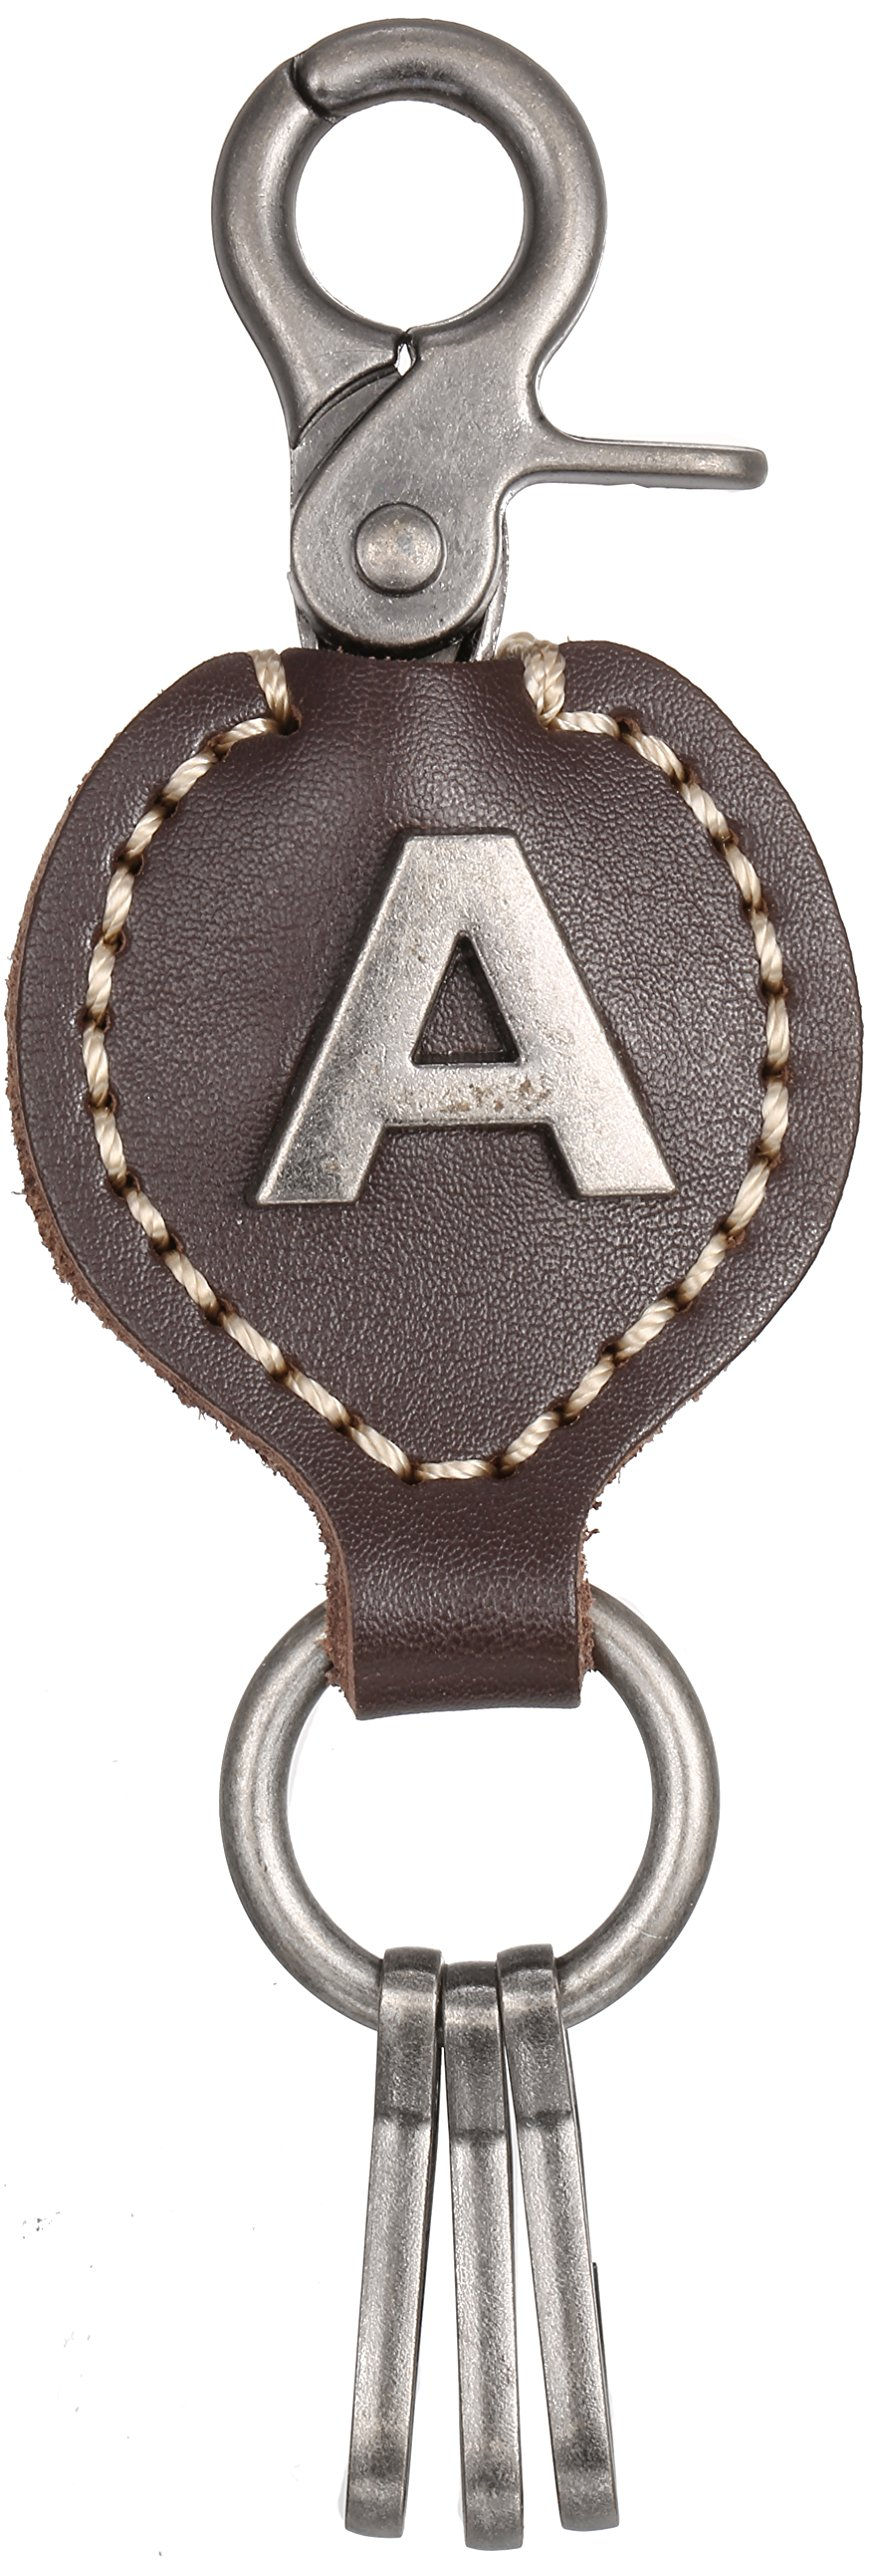 Brown Leather Alphabet Keychain, Single Letter with Easy Clasp Key – by Marino Ave